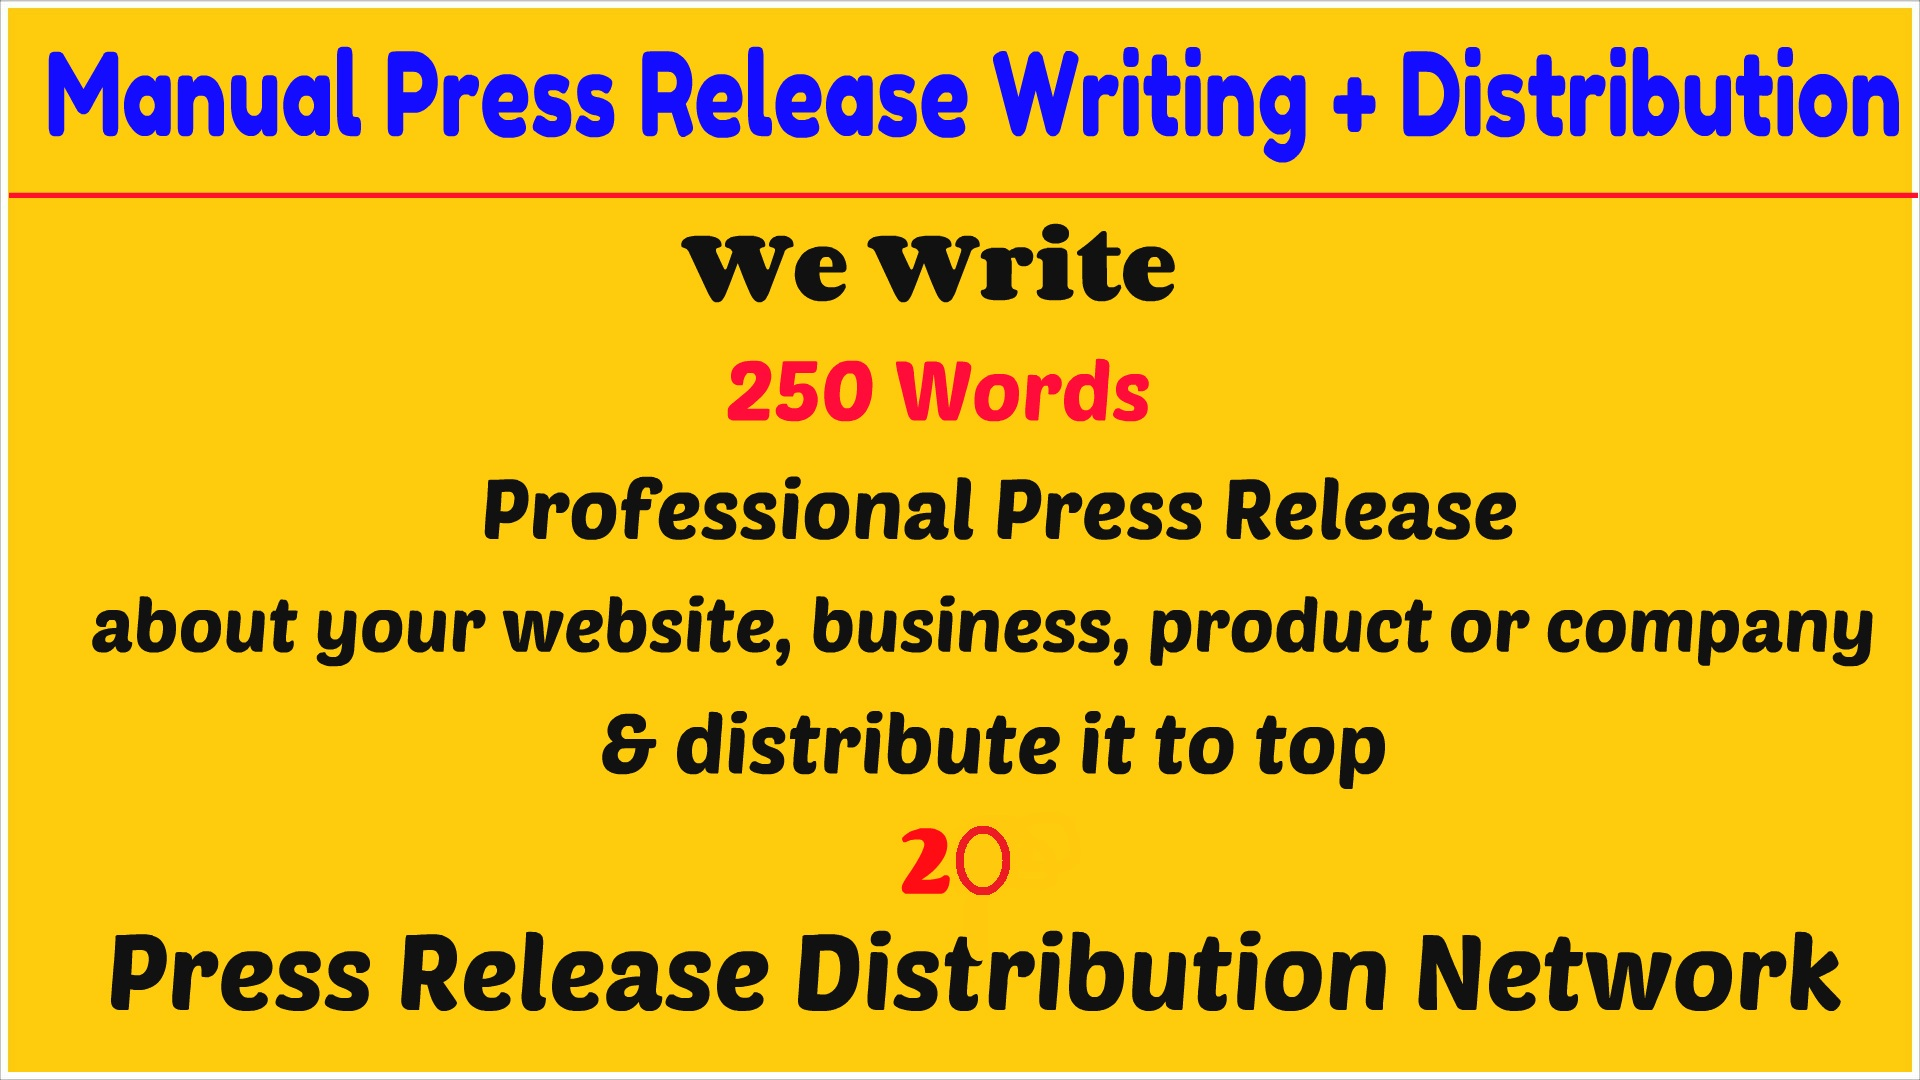 I will write a professional press release and distribute it to top 20 press release network